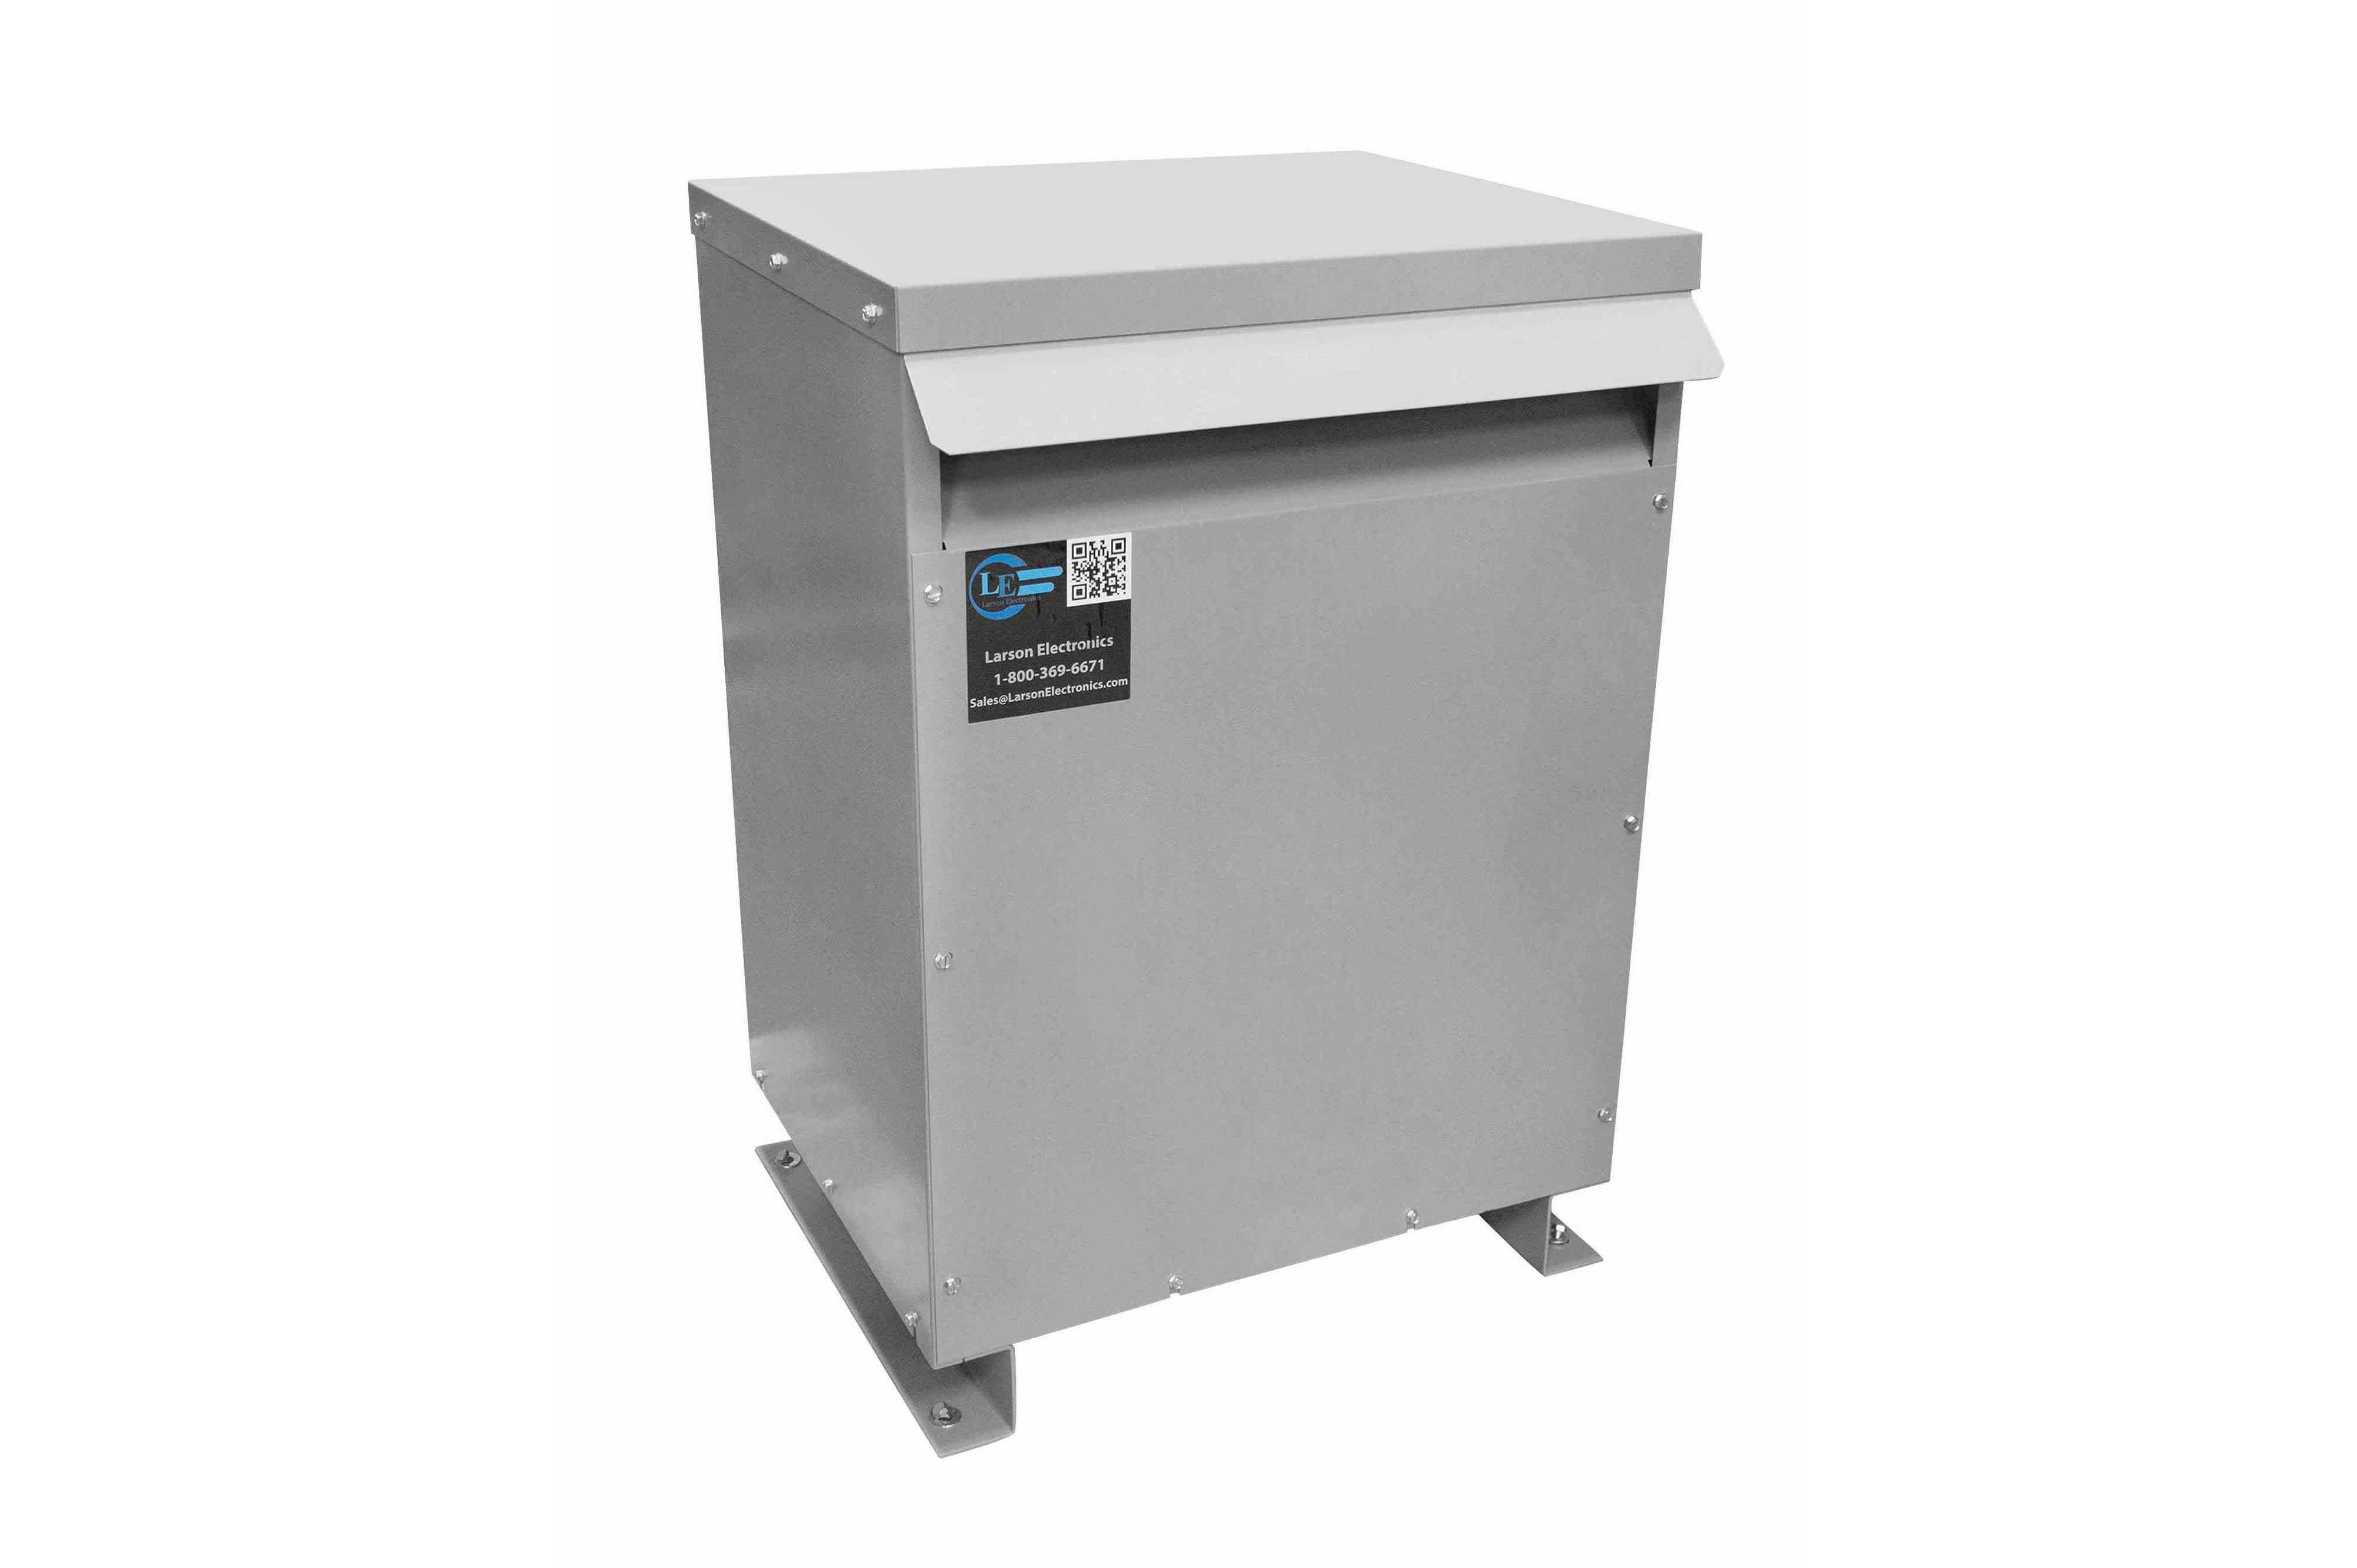 15 kVA 3PH Isolation Transformer, 575V Wye Primary, 240V Delta Secondary, N3R, Ventilated, 60 Hz